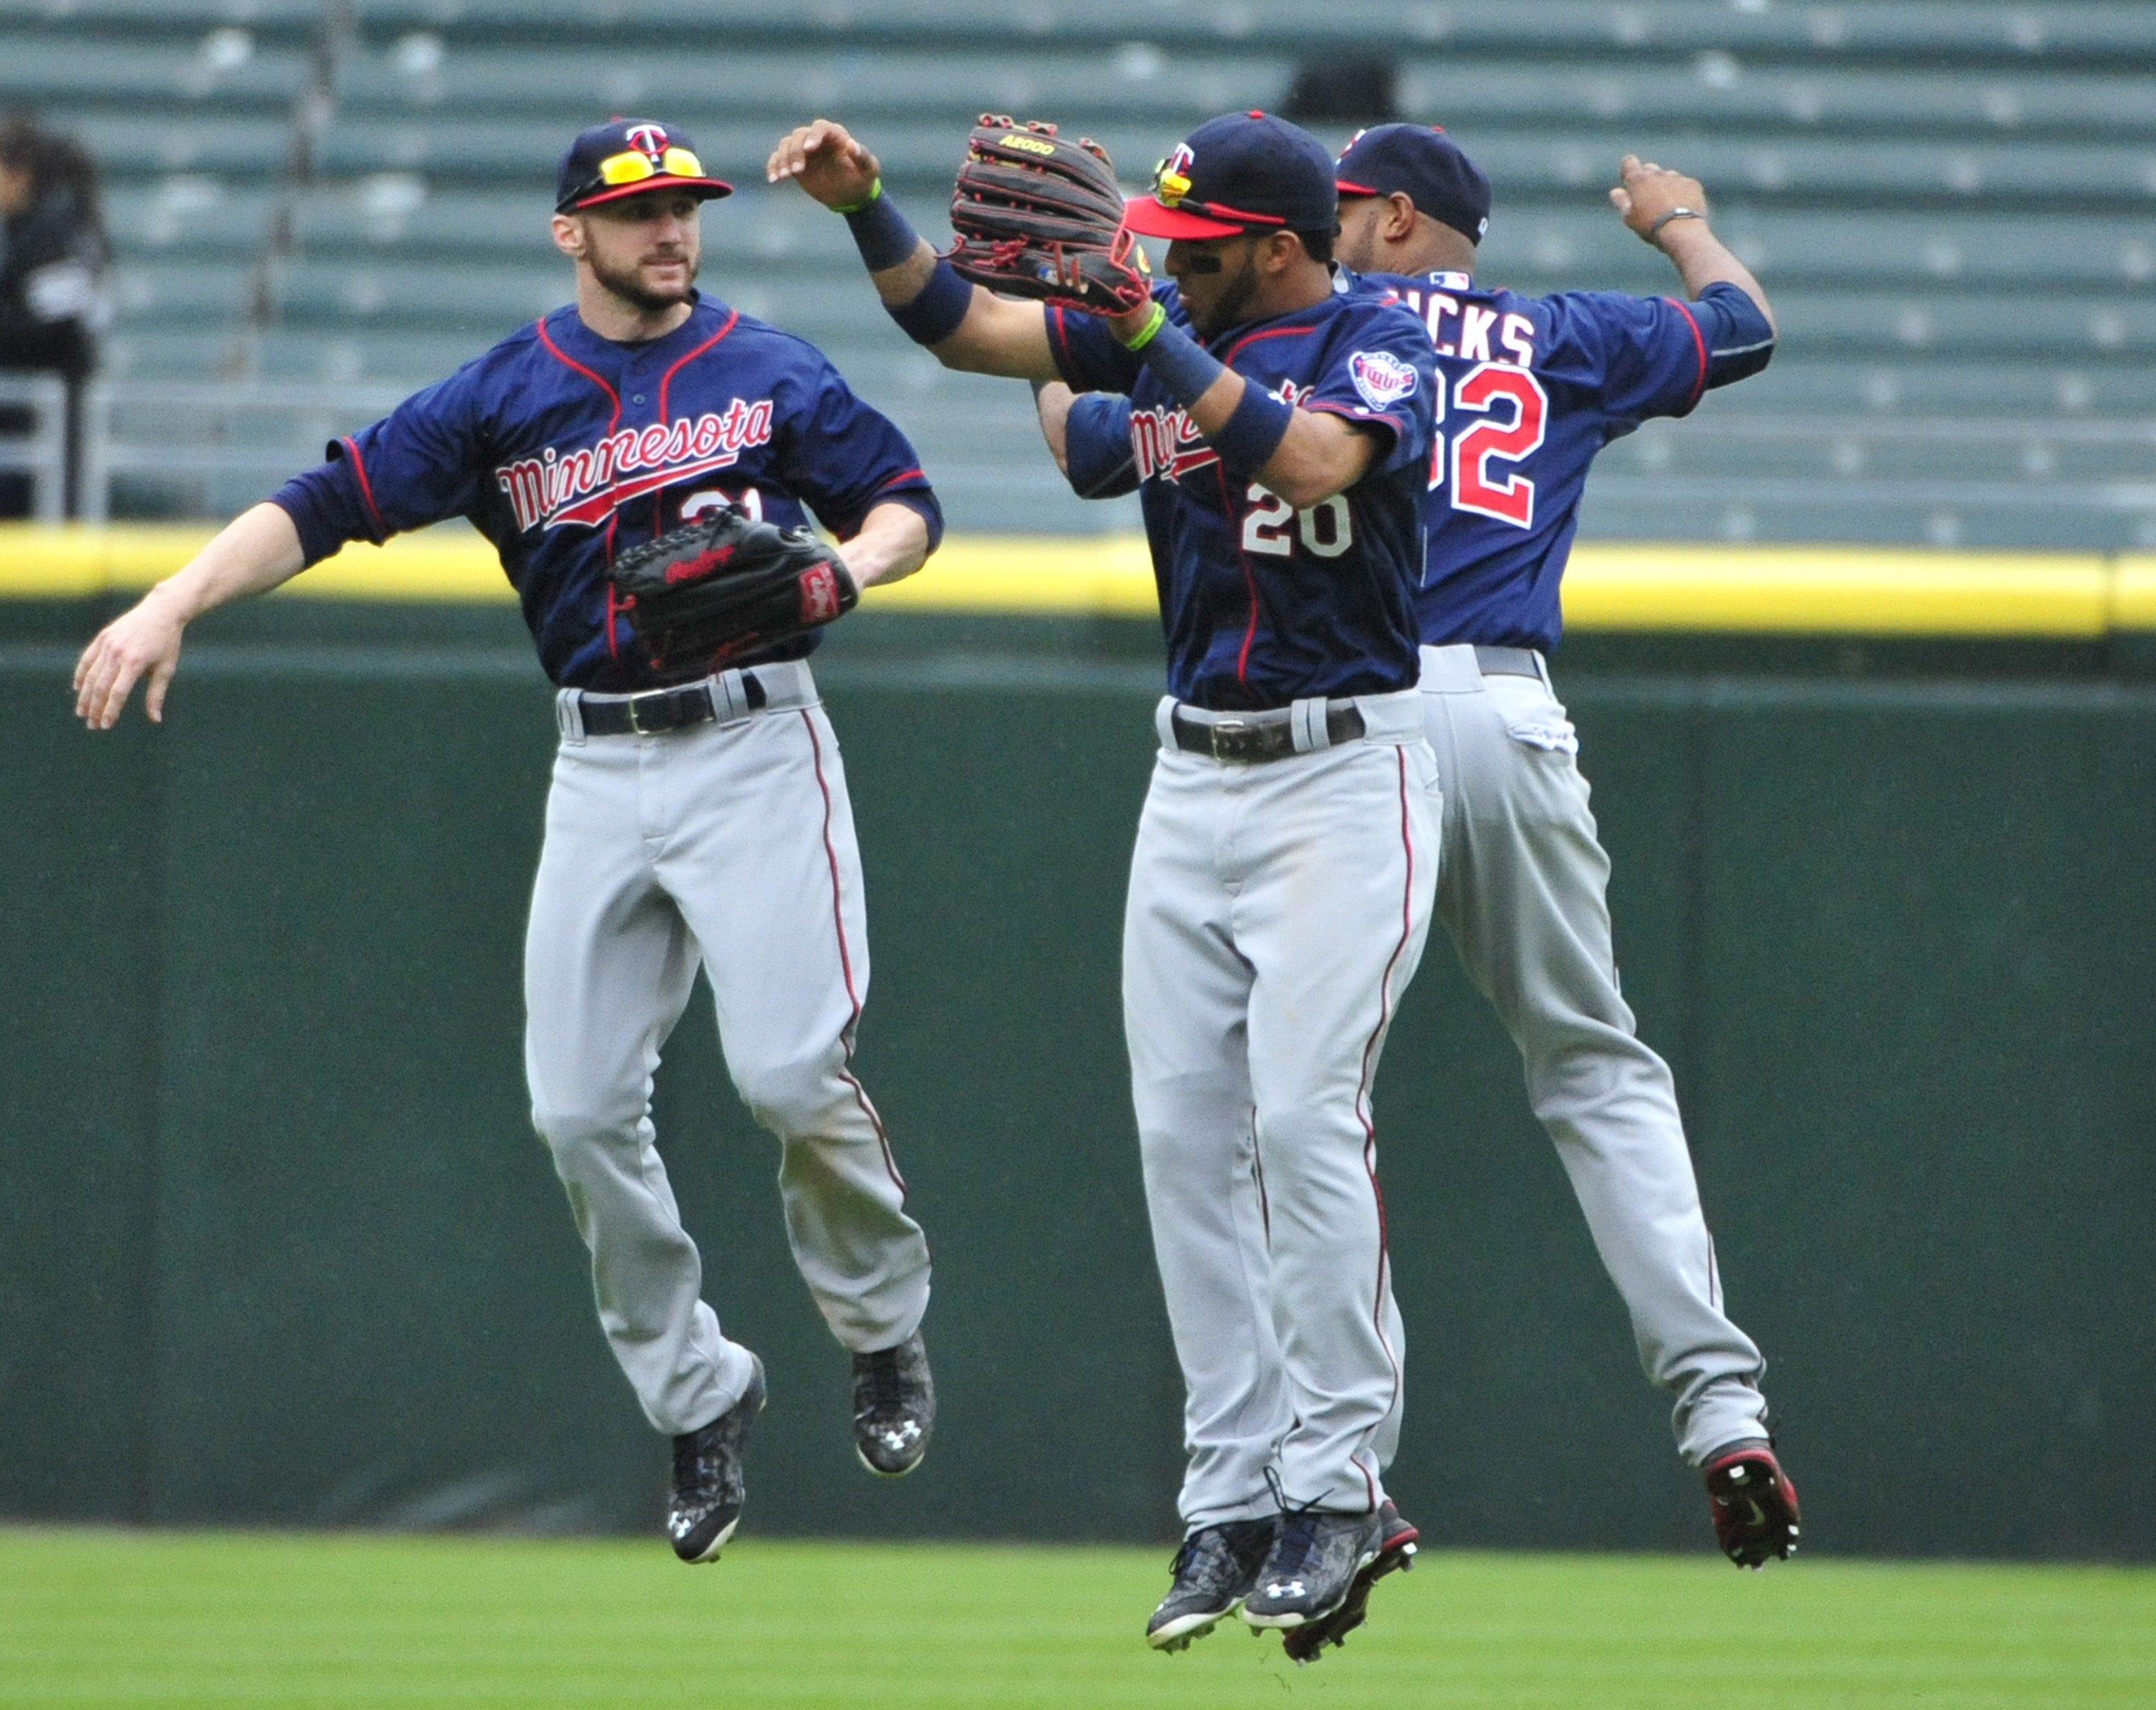 Minnesota Twins' Shane Robinson, left, Eddie Rosario, center, and Aaron Hicks, right, celebrate their 8-1 win in a baseball game against the Chicago White Sox, Sunday, May 24, 2015, in Chicago. (AP Photo/David Banks)